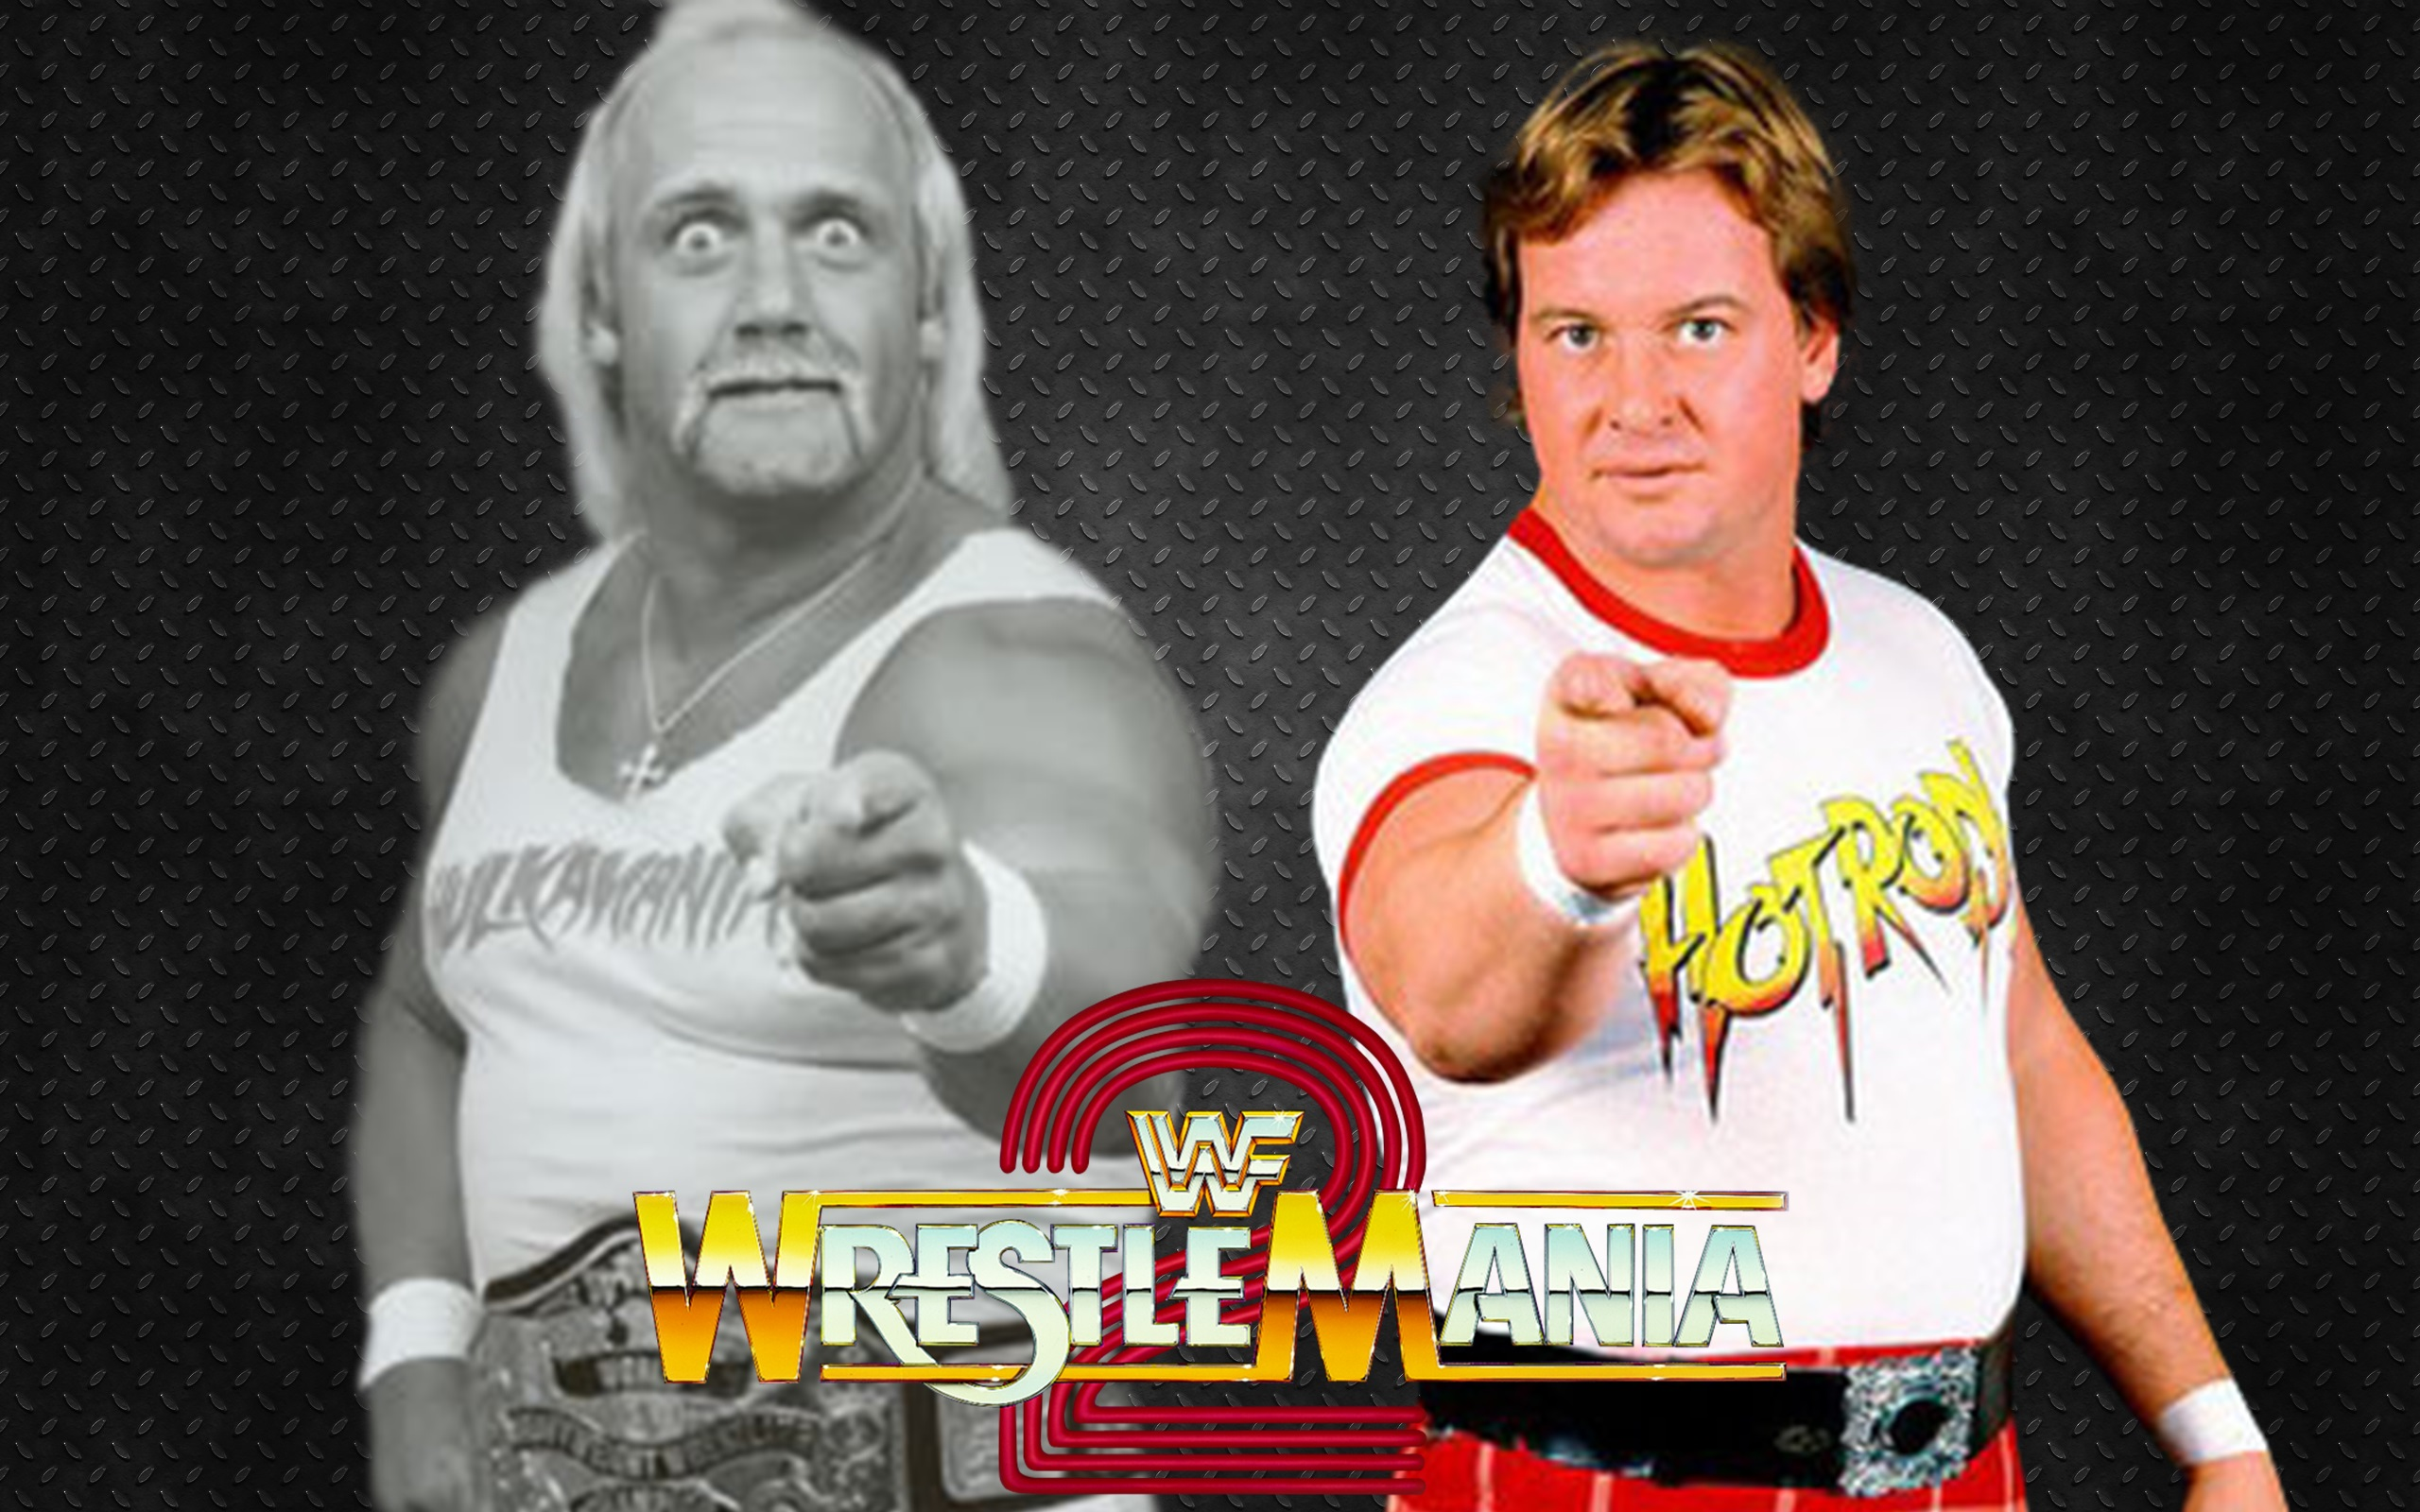 No word on if Hogan would actually wrestle in black & white.